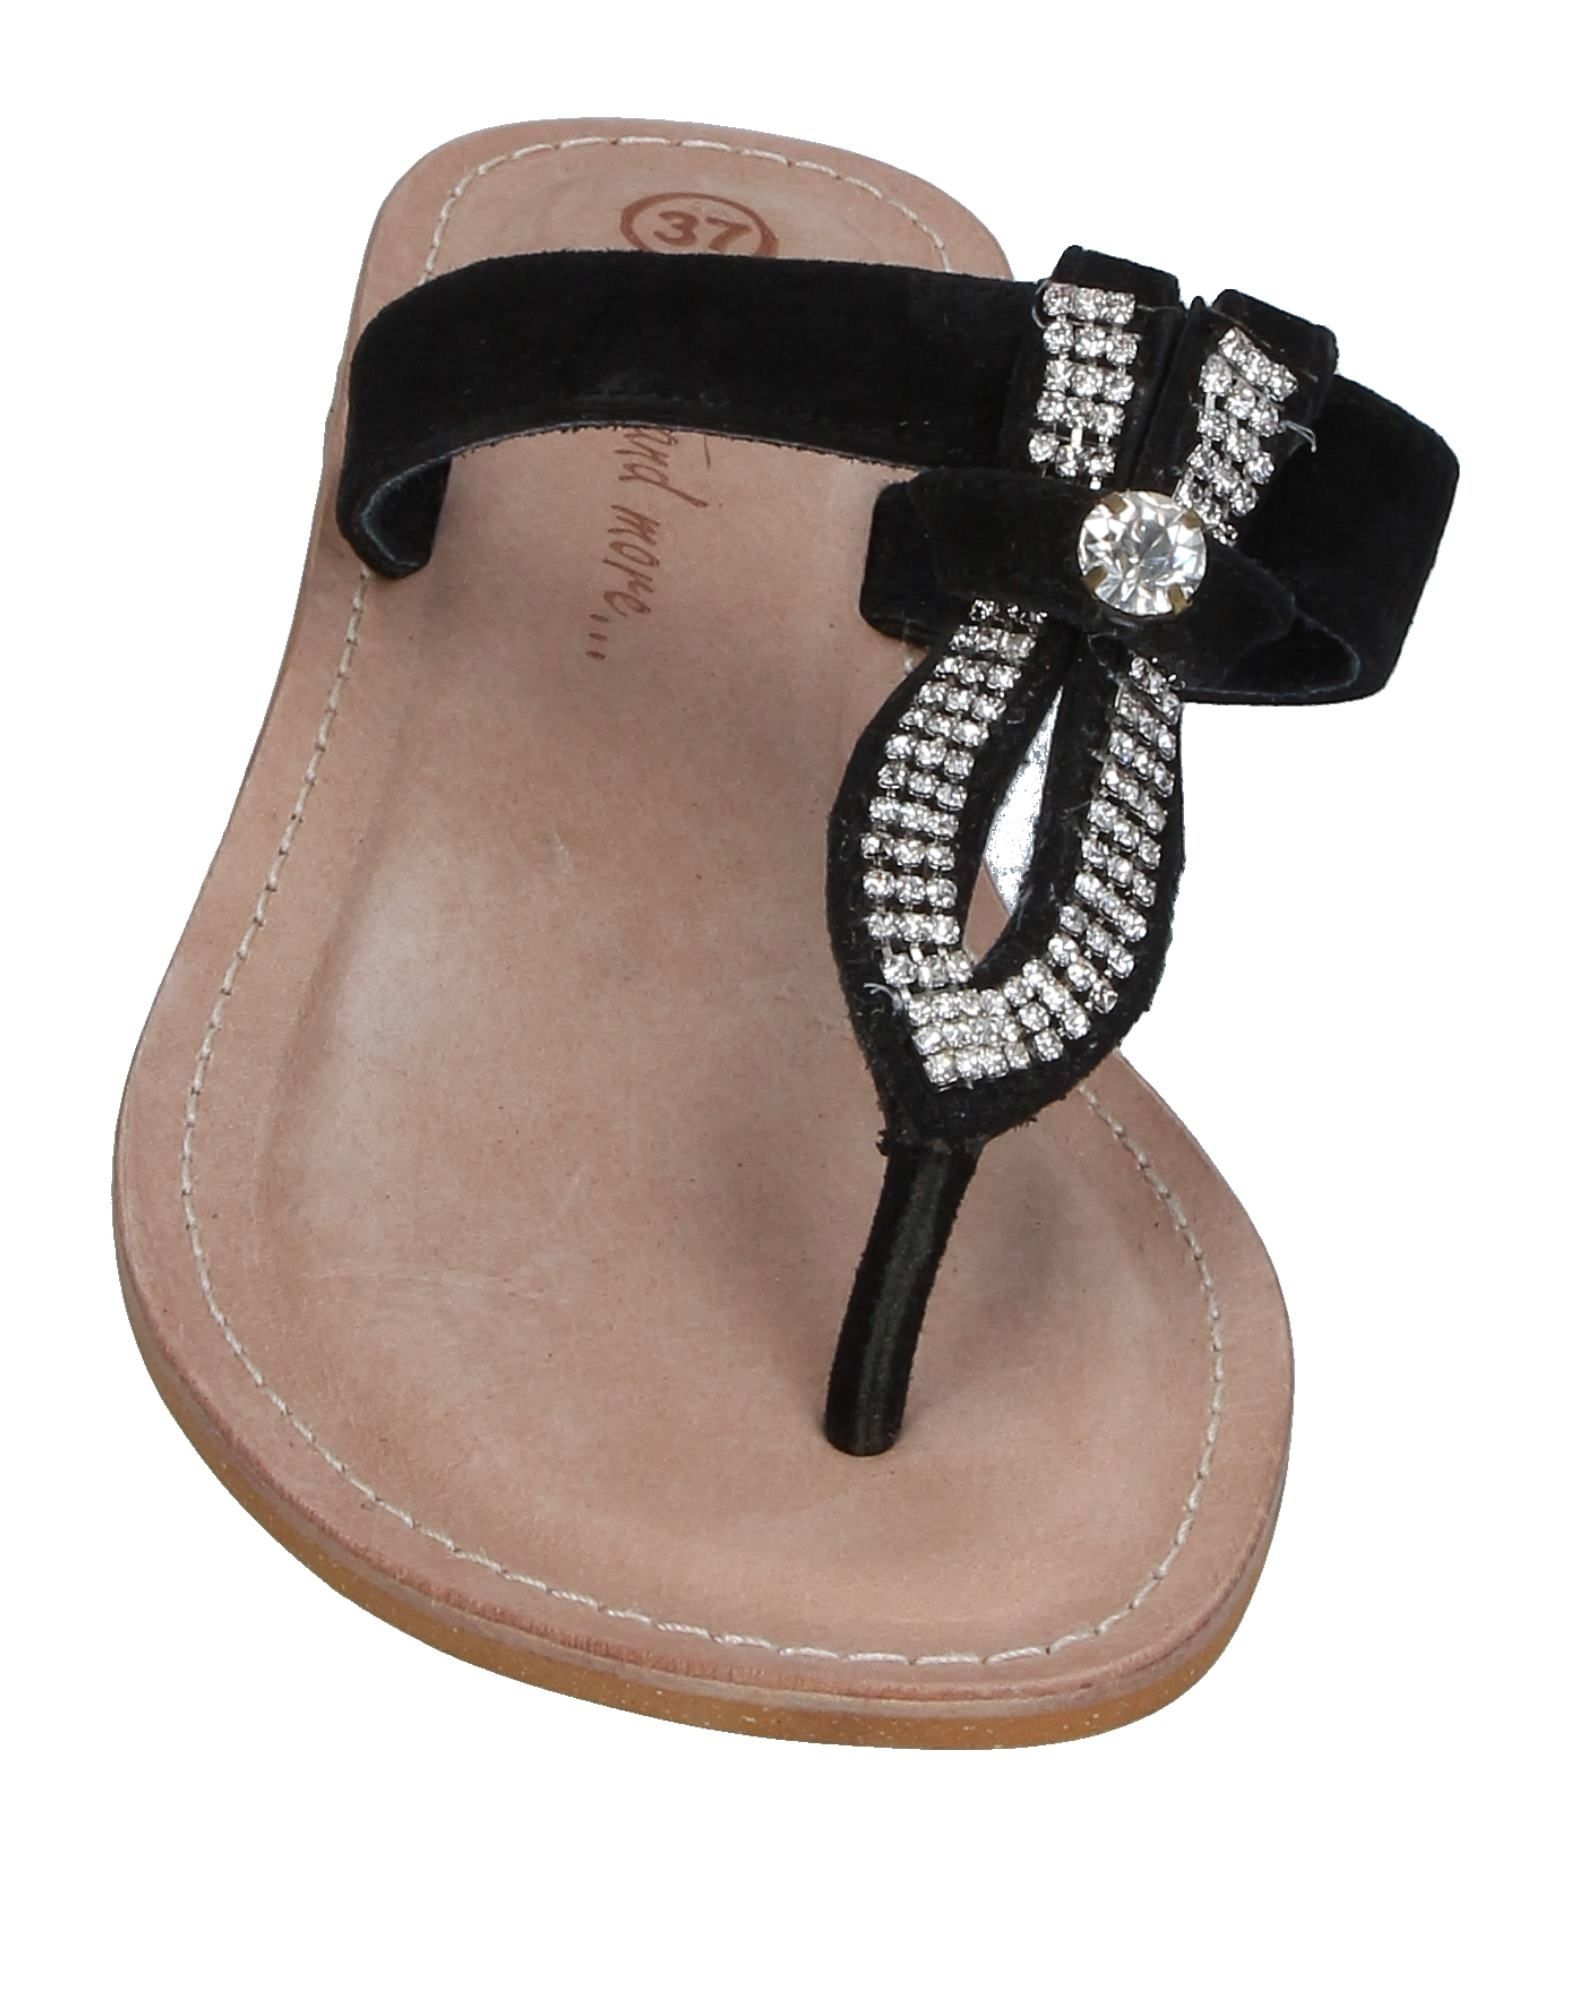 Tongs Shoes And More... Femme - Tongs Shoes And More... sur